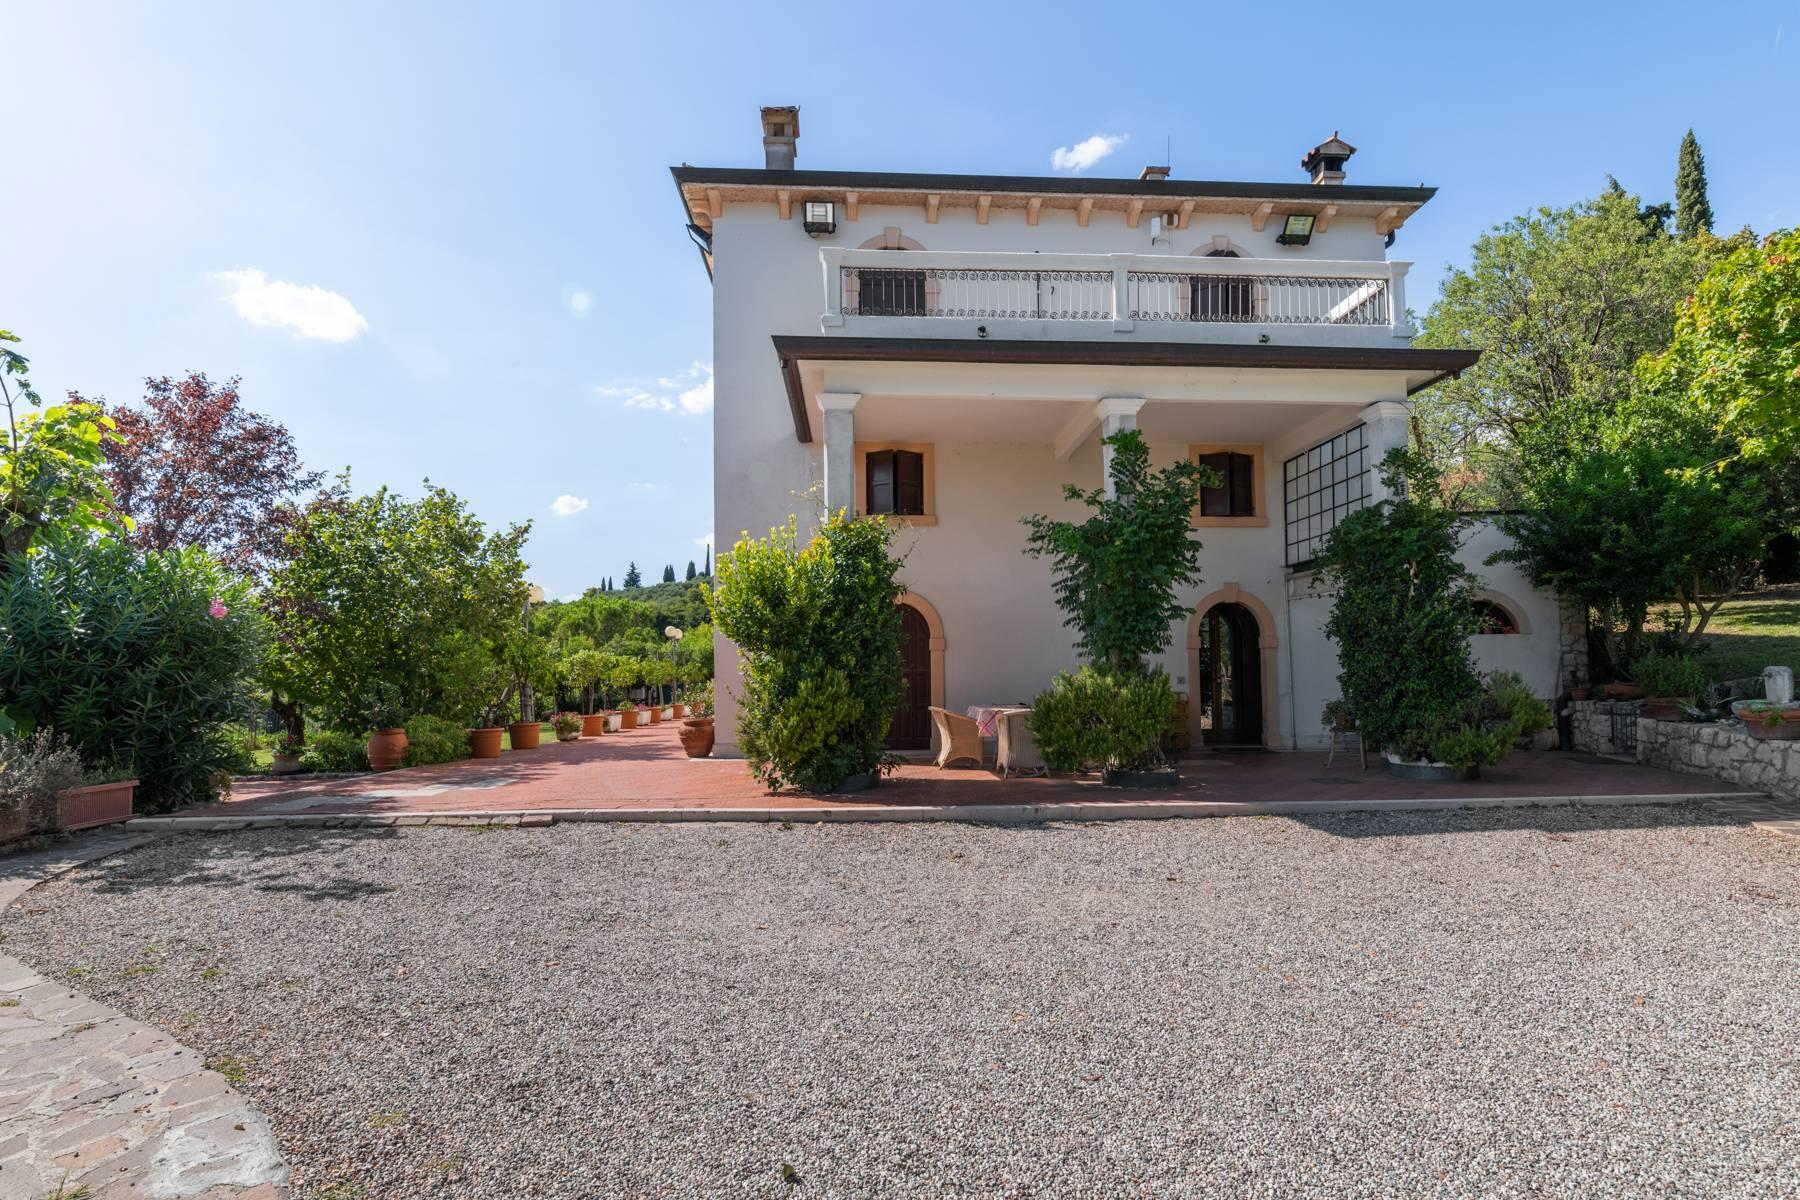 Historic country villa with swimming pool, tennis court and estate on the hills of Verona - 6